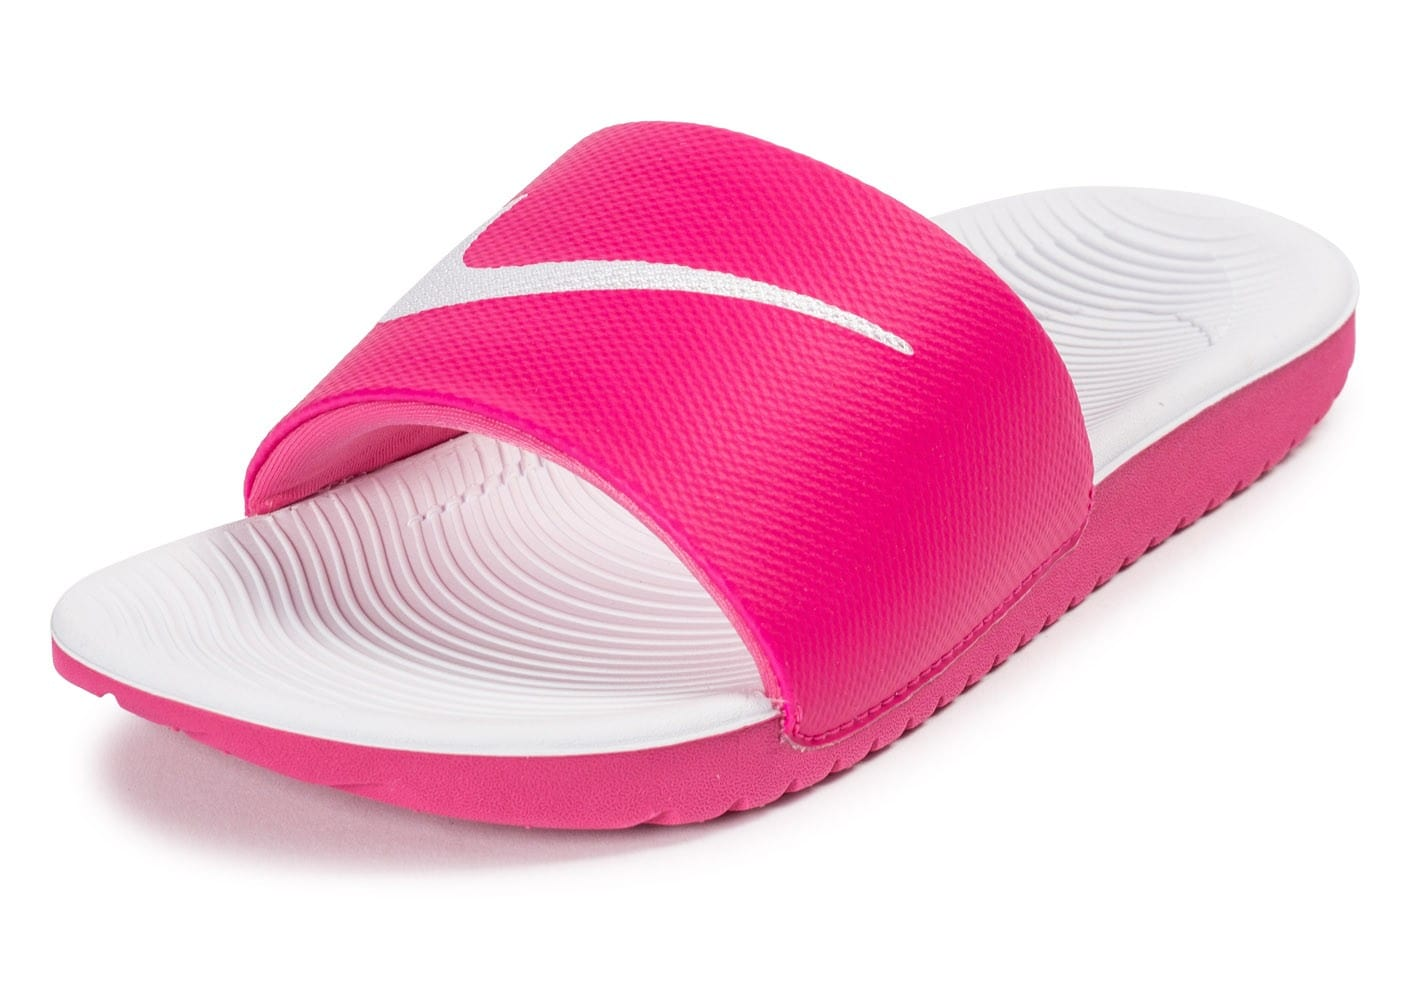 differently 38bbd 8147b ... Chaussures Nike Kawa Slide rose et blanche vue dessus